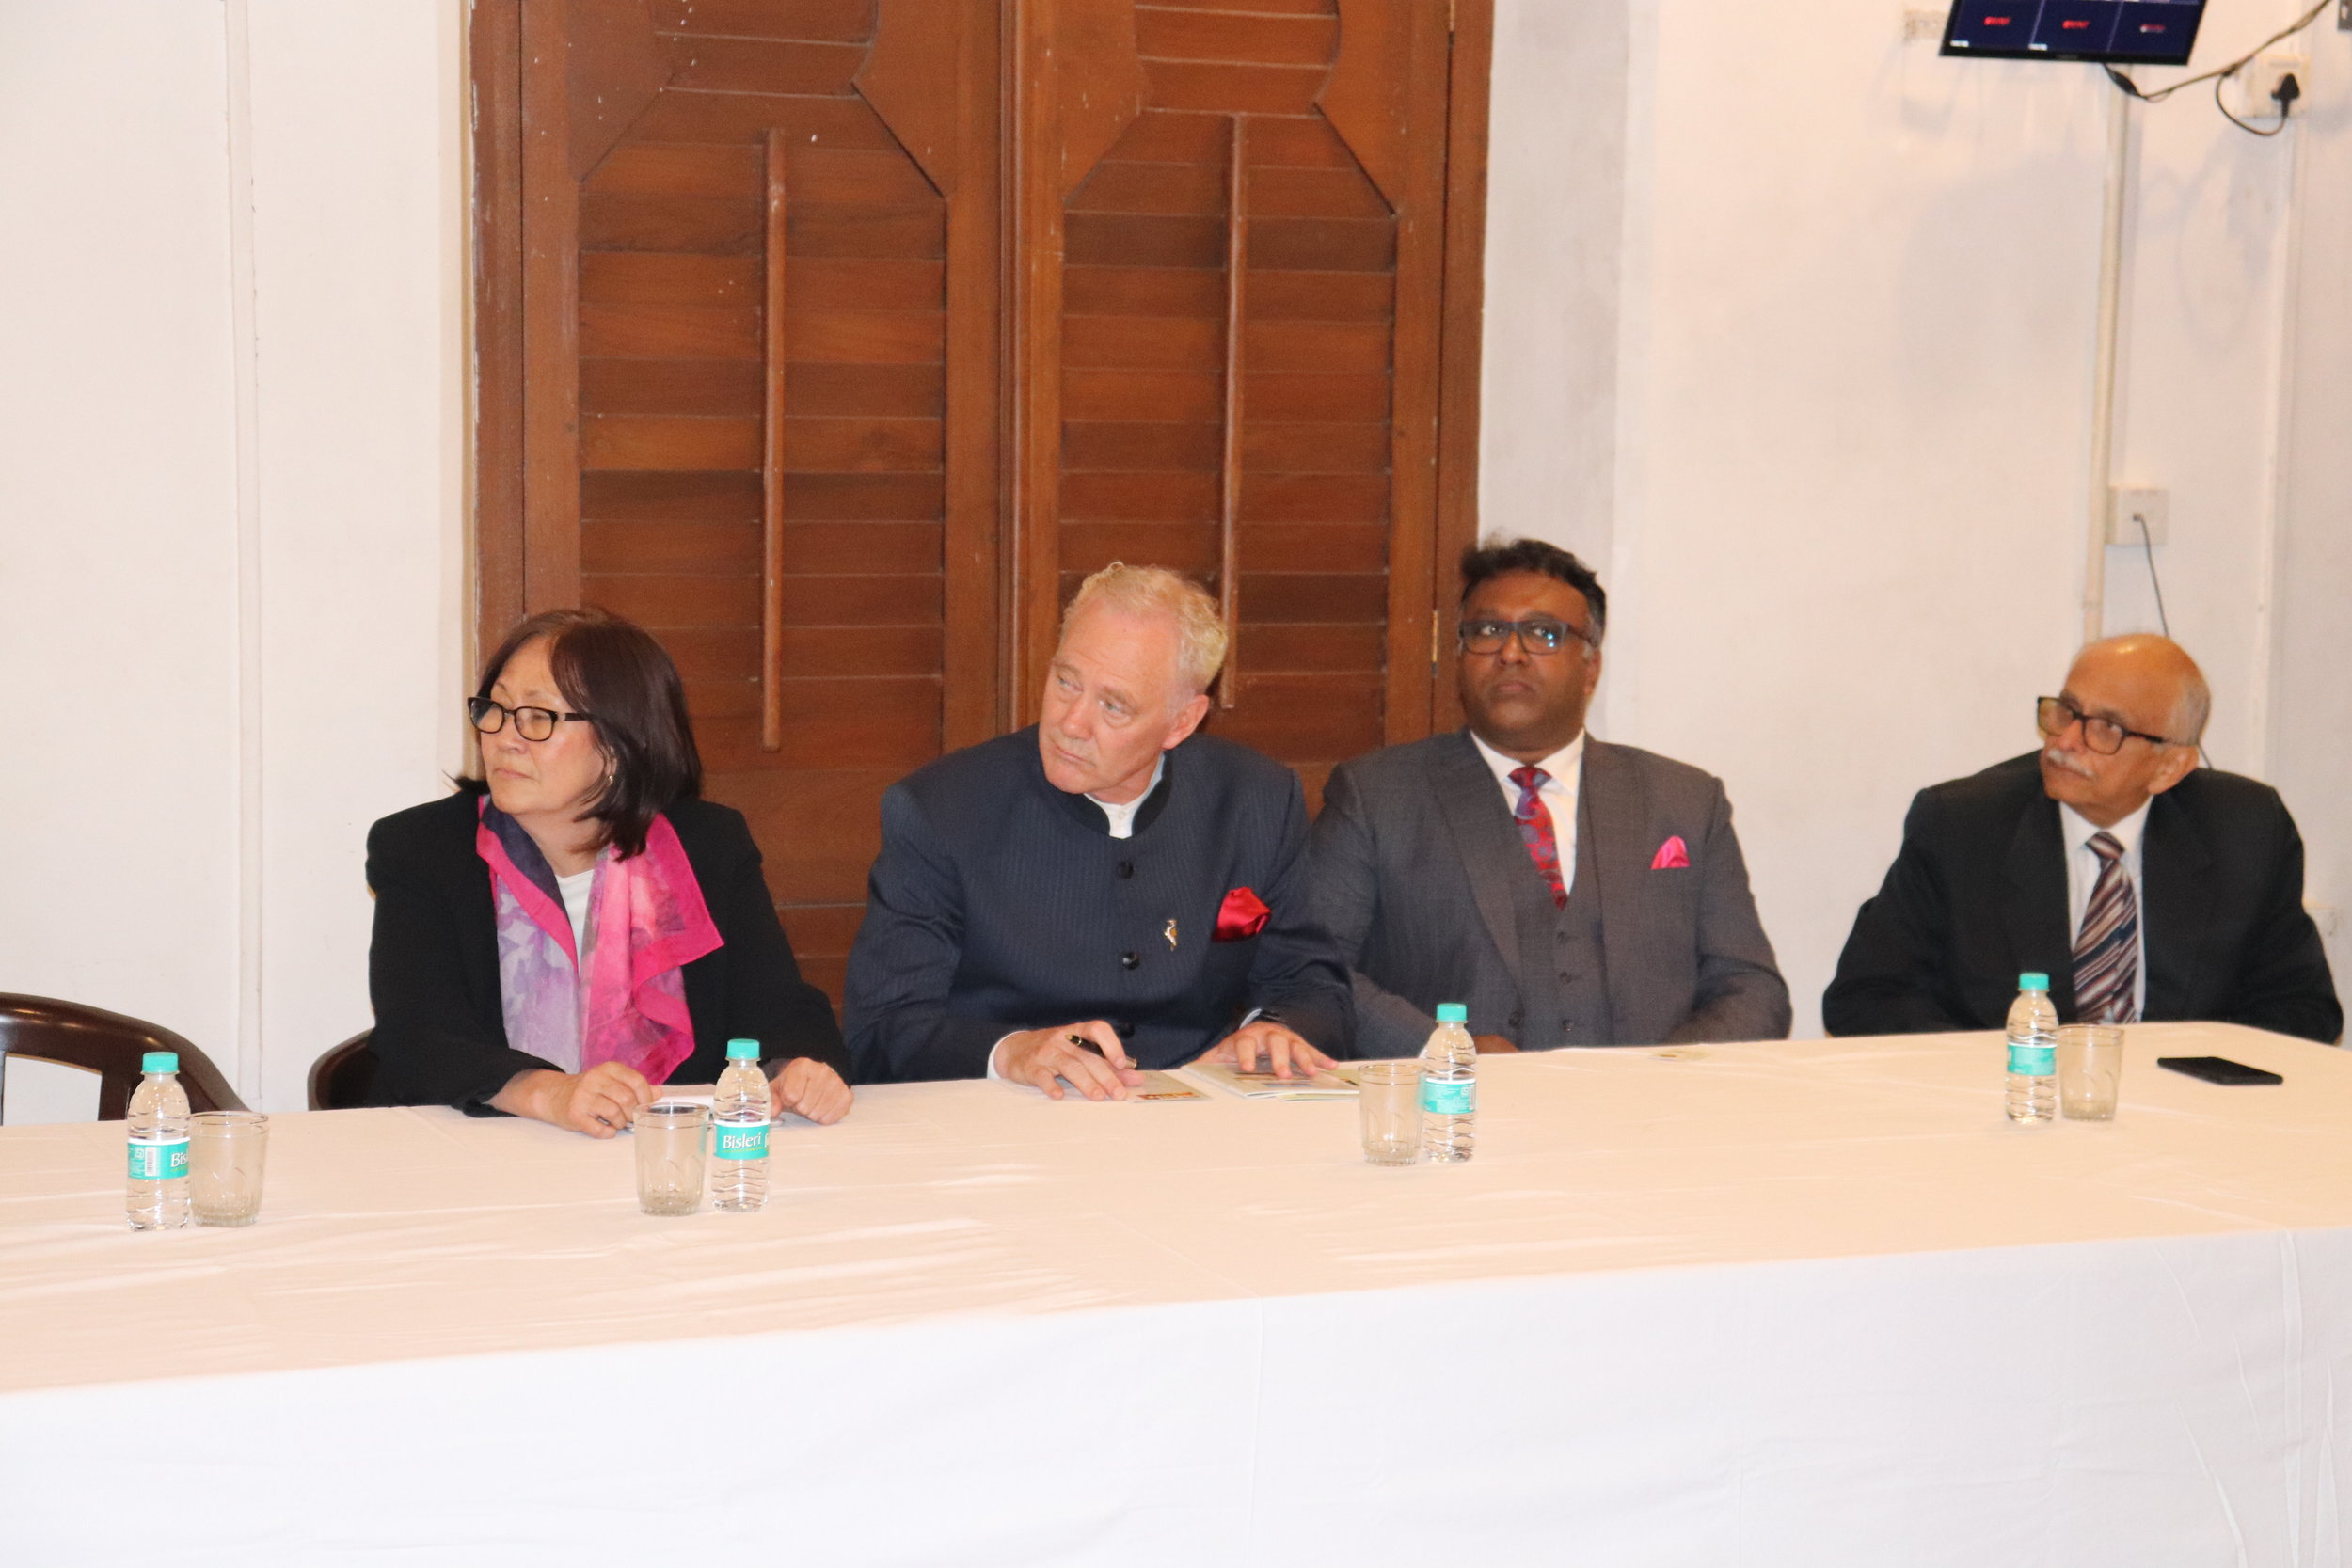 26/03/2019 ROLE OF THE JUDICIARY IN PROTECTING THE RULE OF LAW IN INDIA AND THE USA - COMPARATIVE PERSPECTIVES